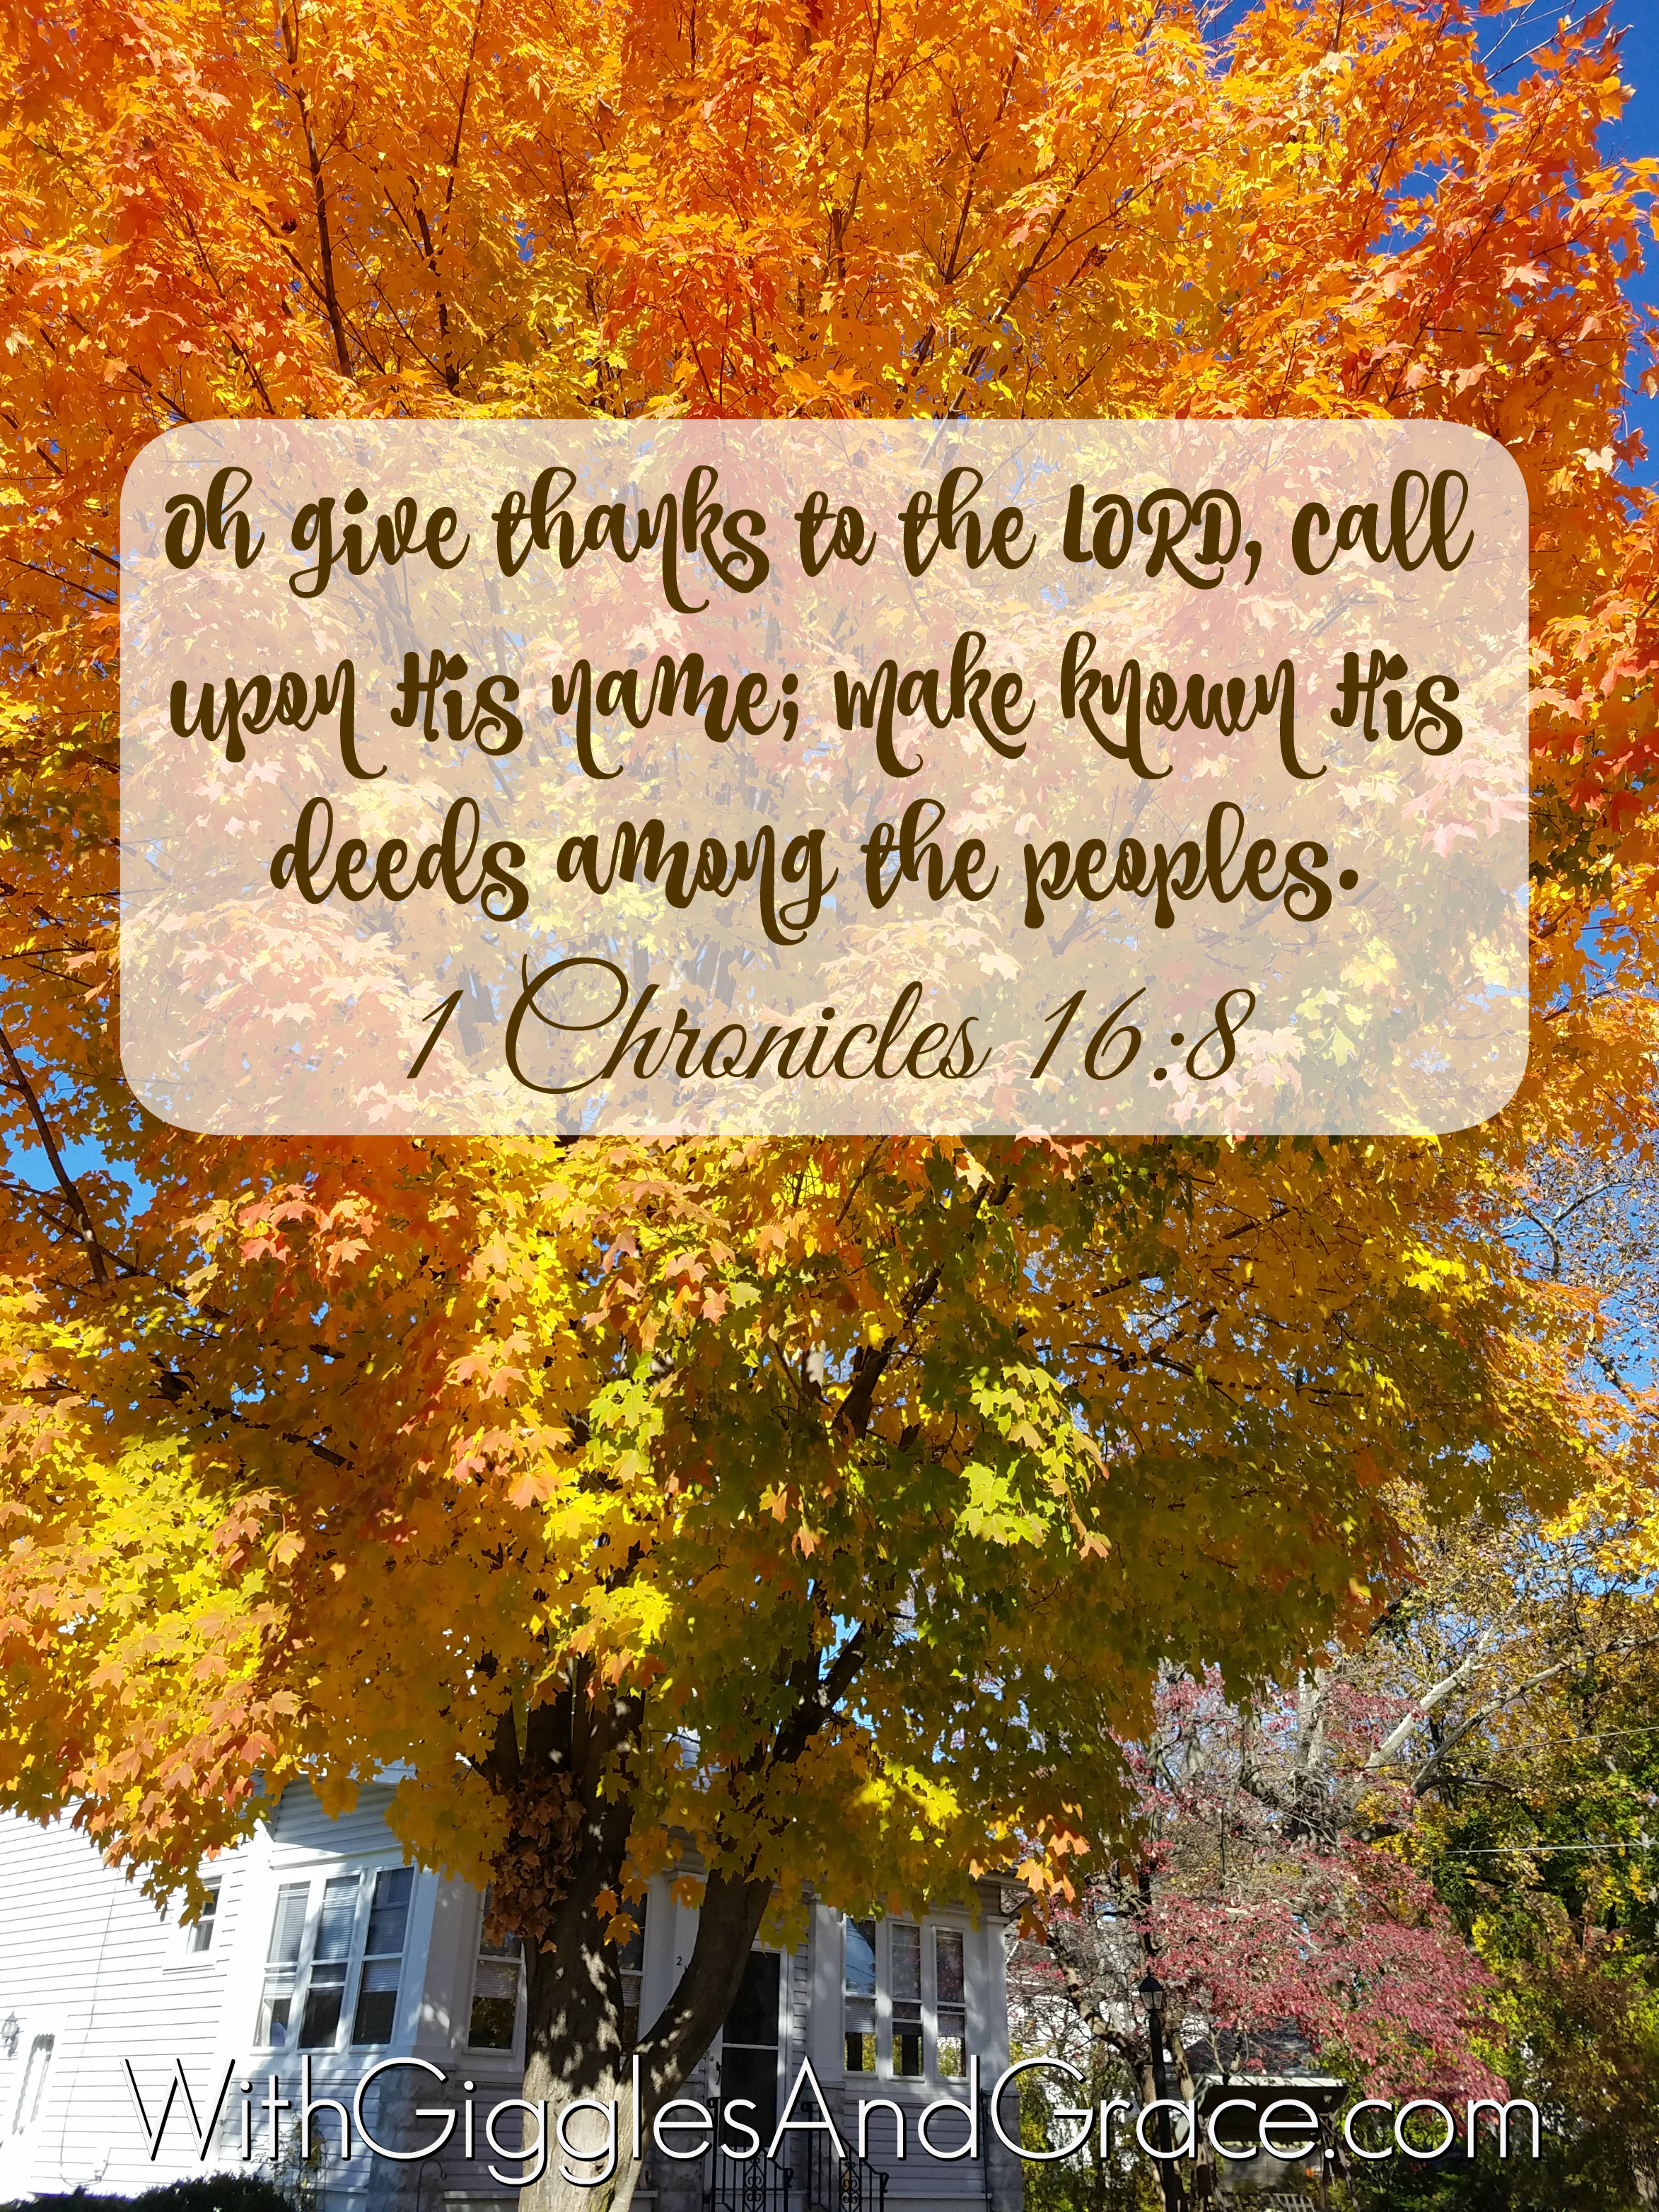 1 Chronicles 16:8 – Oh give thanks to the LORD, call upon His name; Make known His deeds among the peoples.